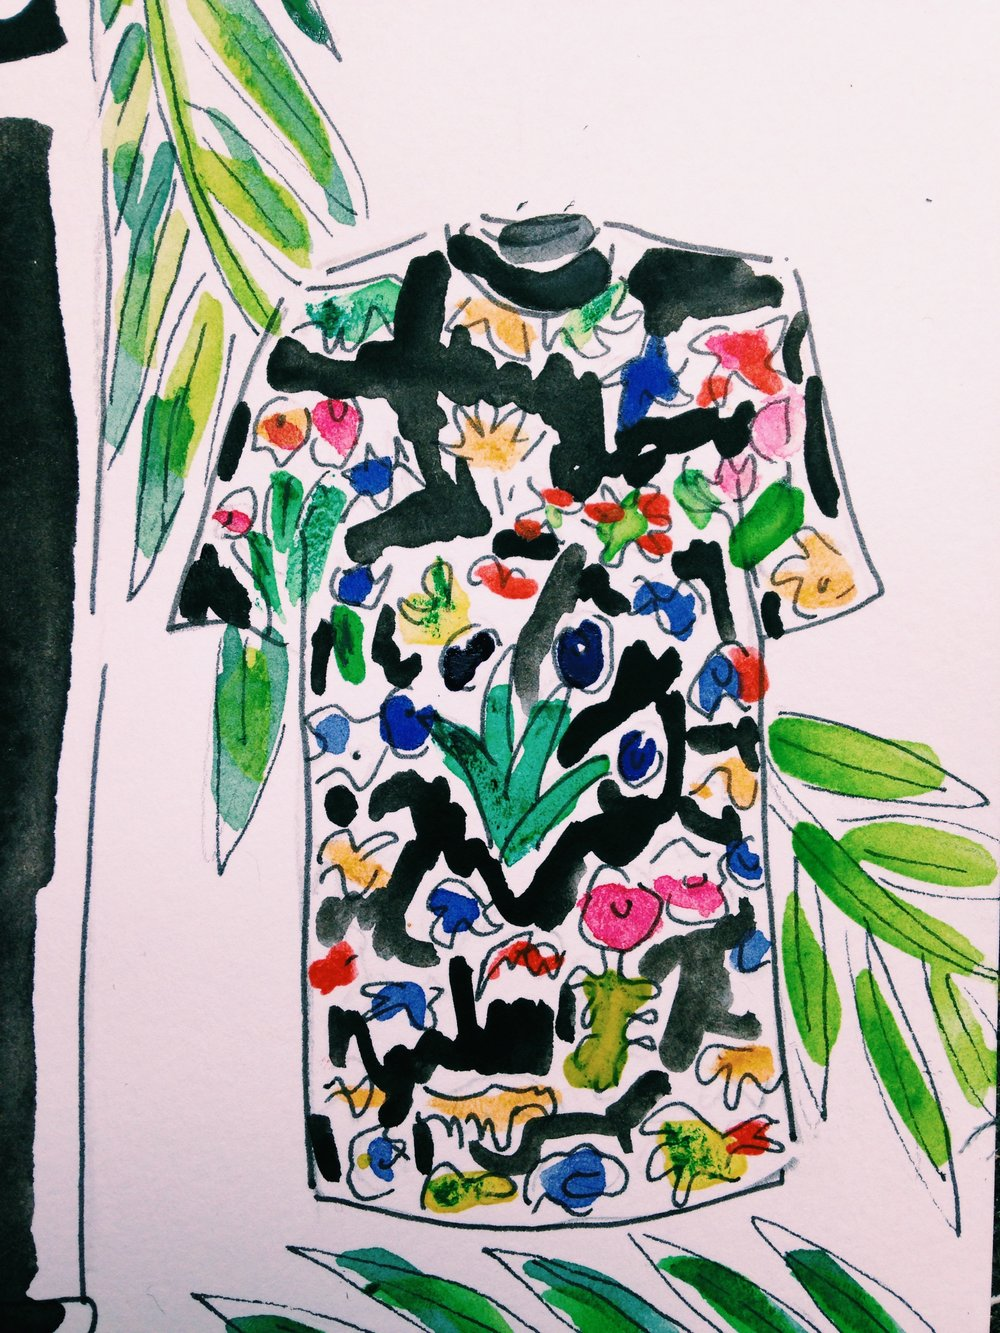 PS by Paul Smith Tropical Floral Print Shirt available at Barney's New York